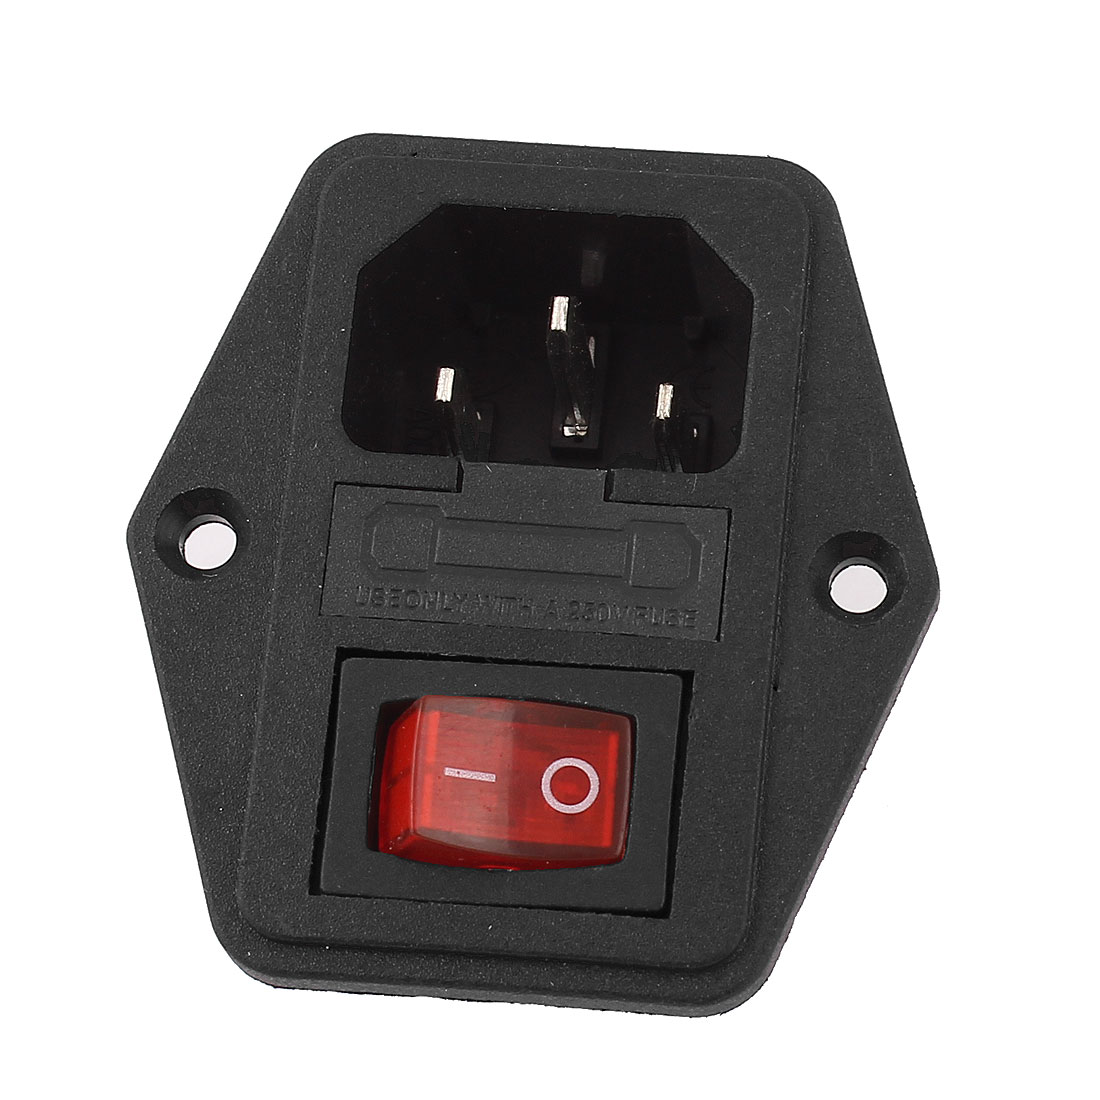 AC 250V 10A IEC320 C14 Power Inlet Red Light Rocker Switch w Fuse Holder